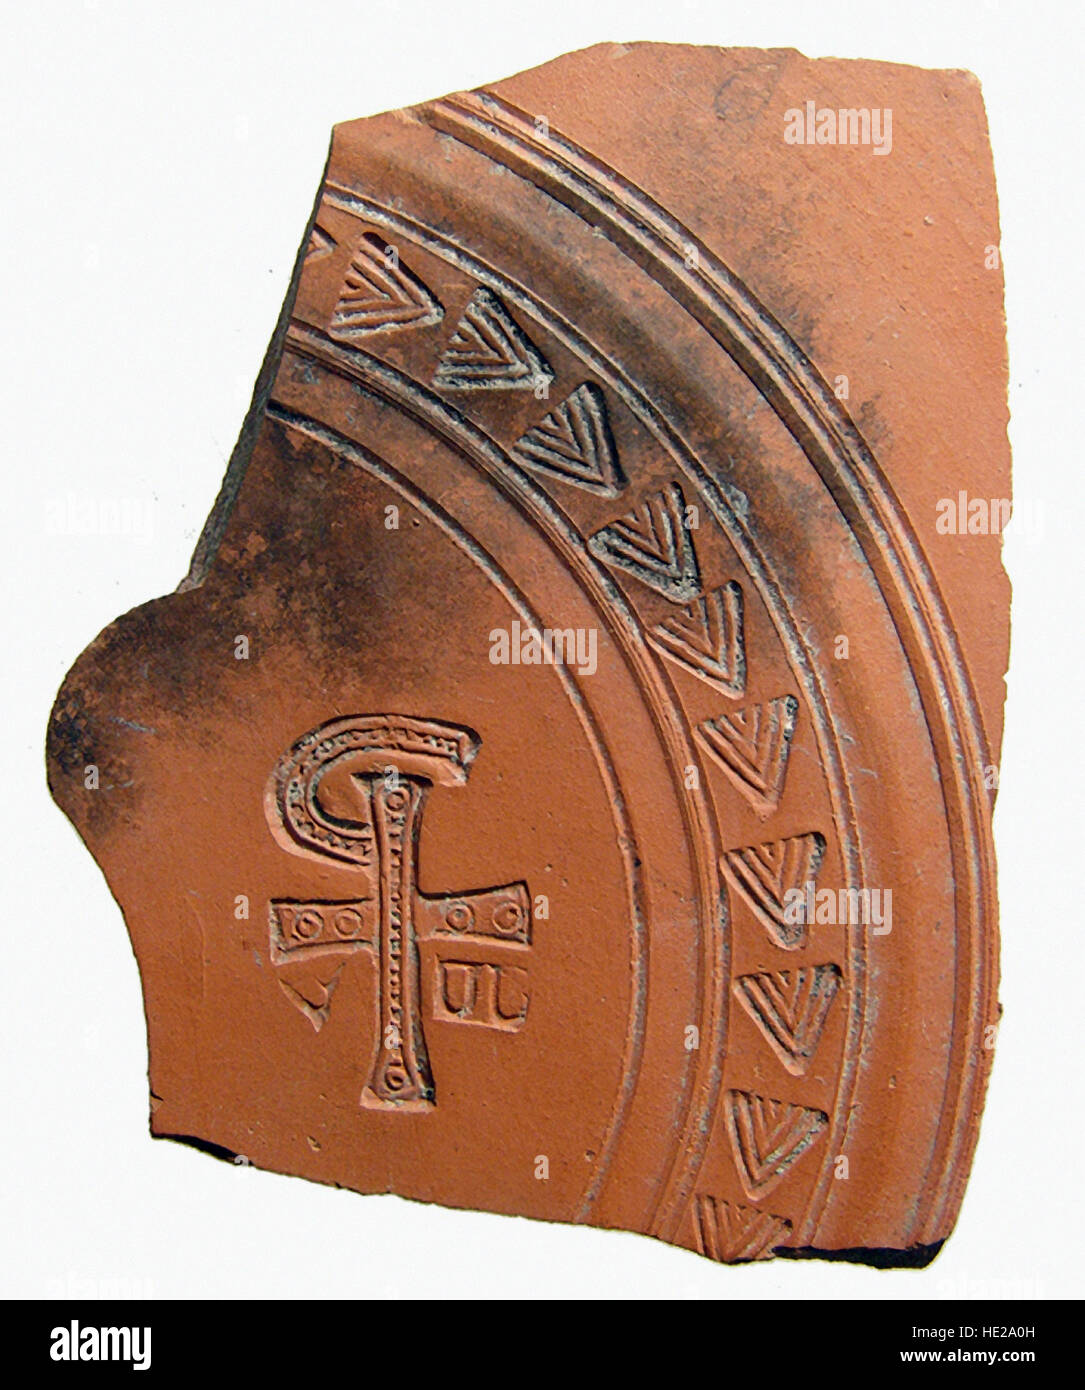 6017. Roman (North Africa) pottery sherd depicting the 'Chi Rho', a combination of letters that forms an abbreviation - Stock Image